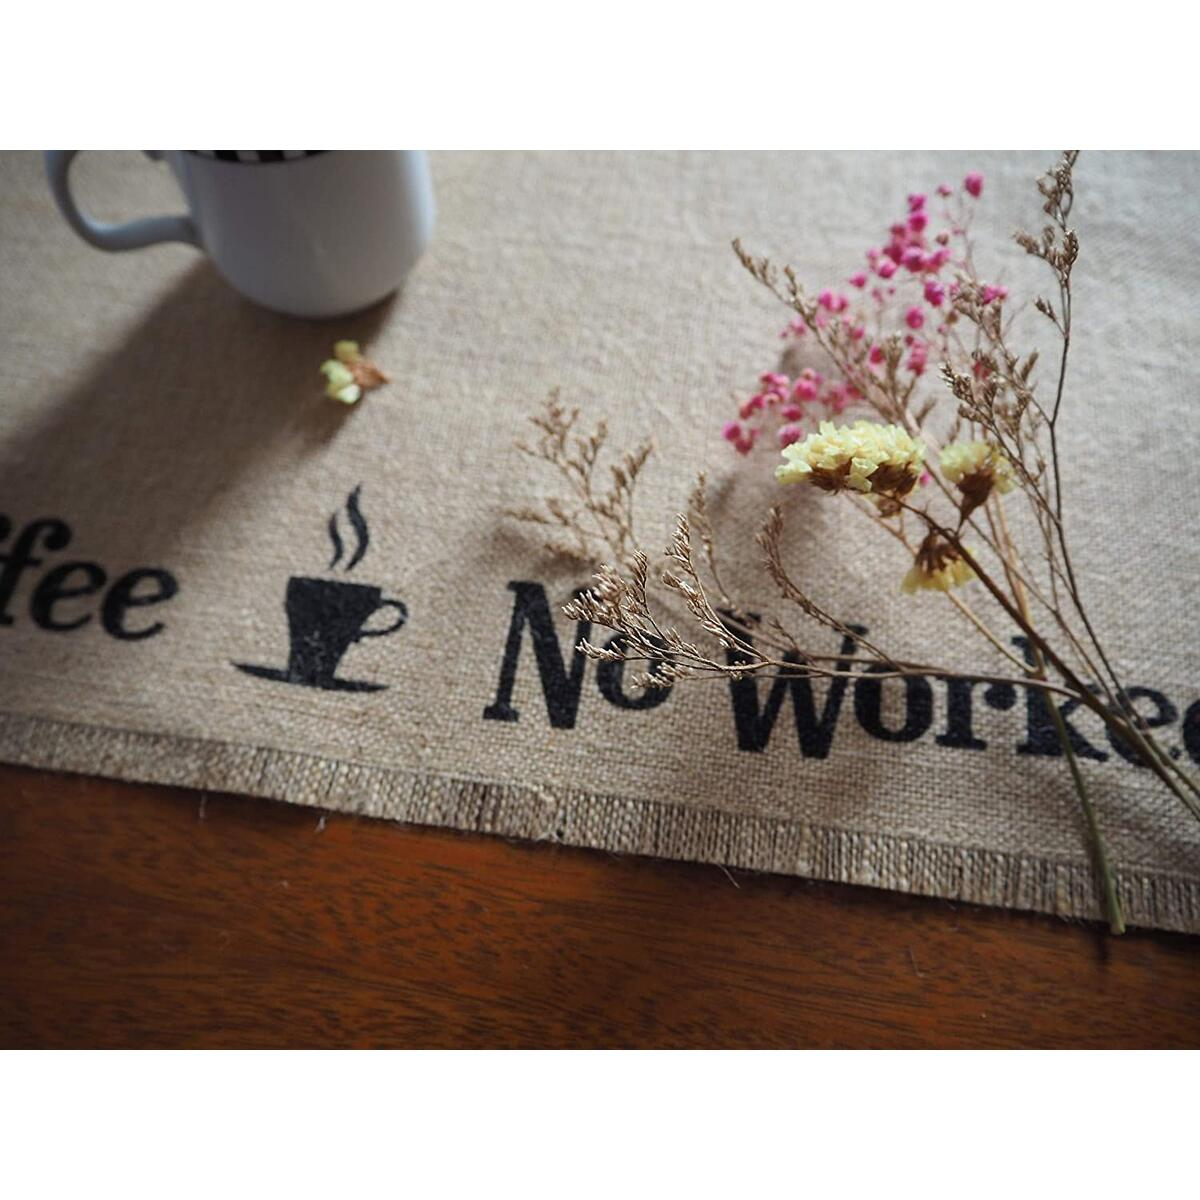 Burlap Coffee Bar Placemat, Farmhouse Coffee Bar Accessories, Countertop Place Mat For Coffee Maker, Wine Station and Coffee Bar Decor, Perfect Gift For Keurig, Coffee and Wine Lovers, 14